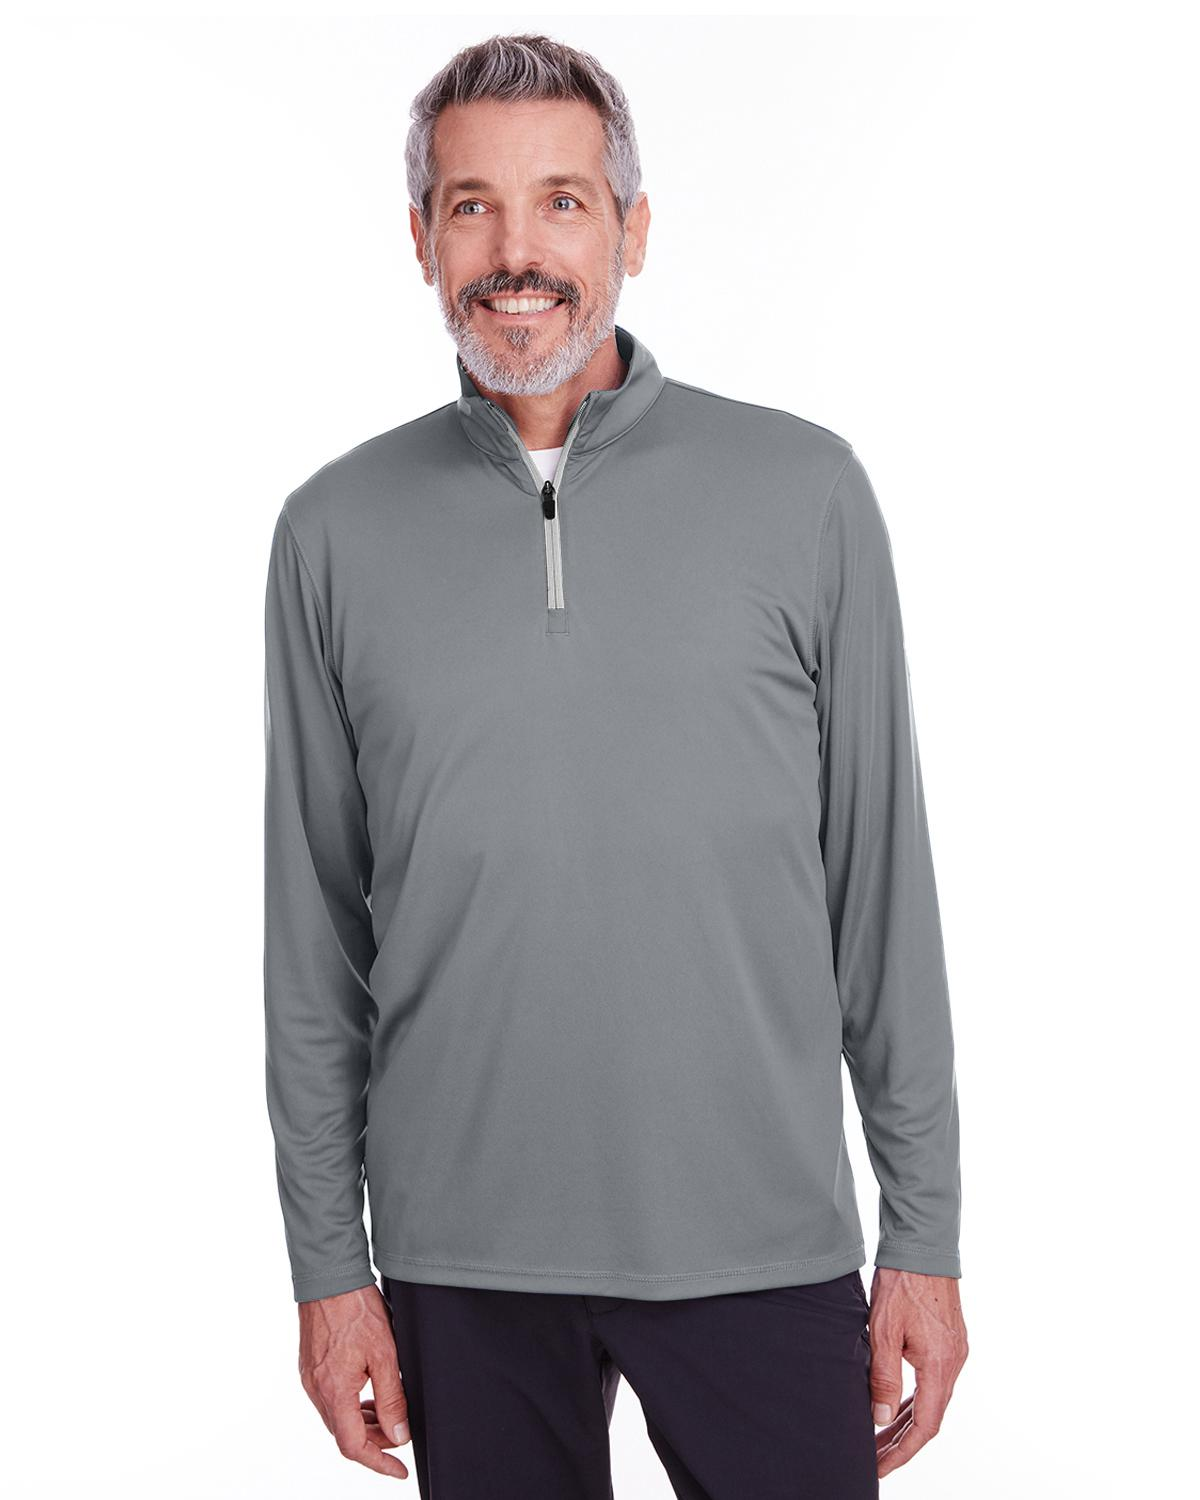 puma men's quarter zip